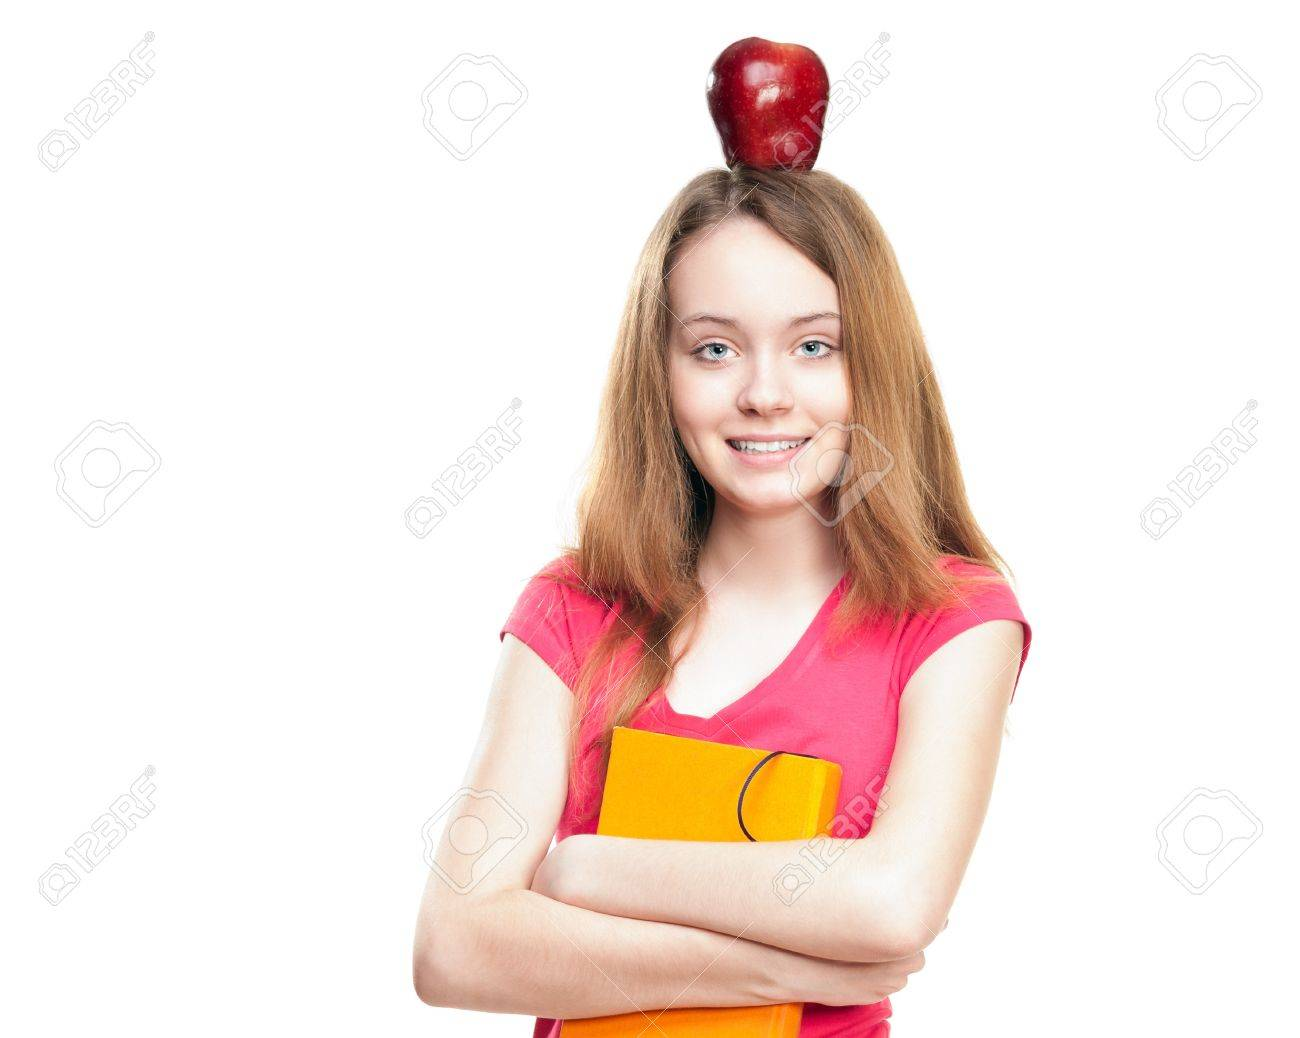 Beautiful and happy young student girl with apple on her head and book in her hands. Stock Photo - 14821809